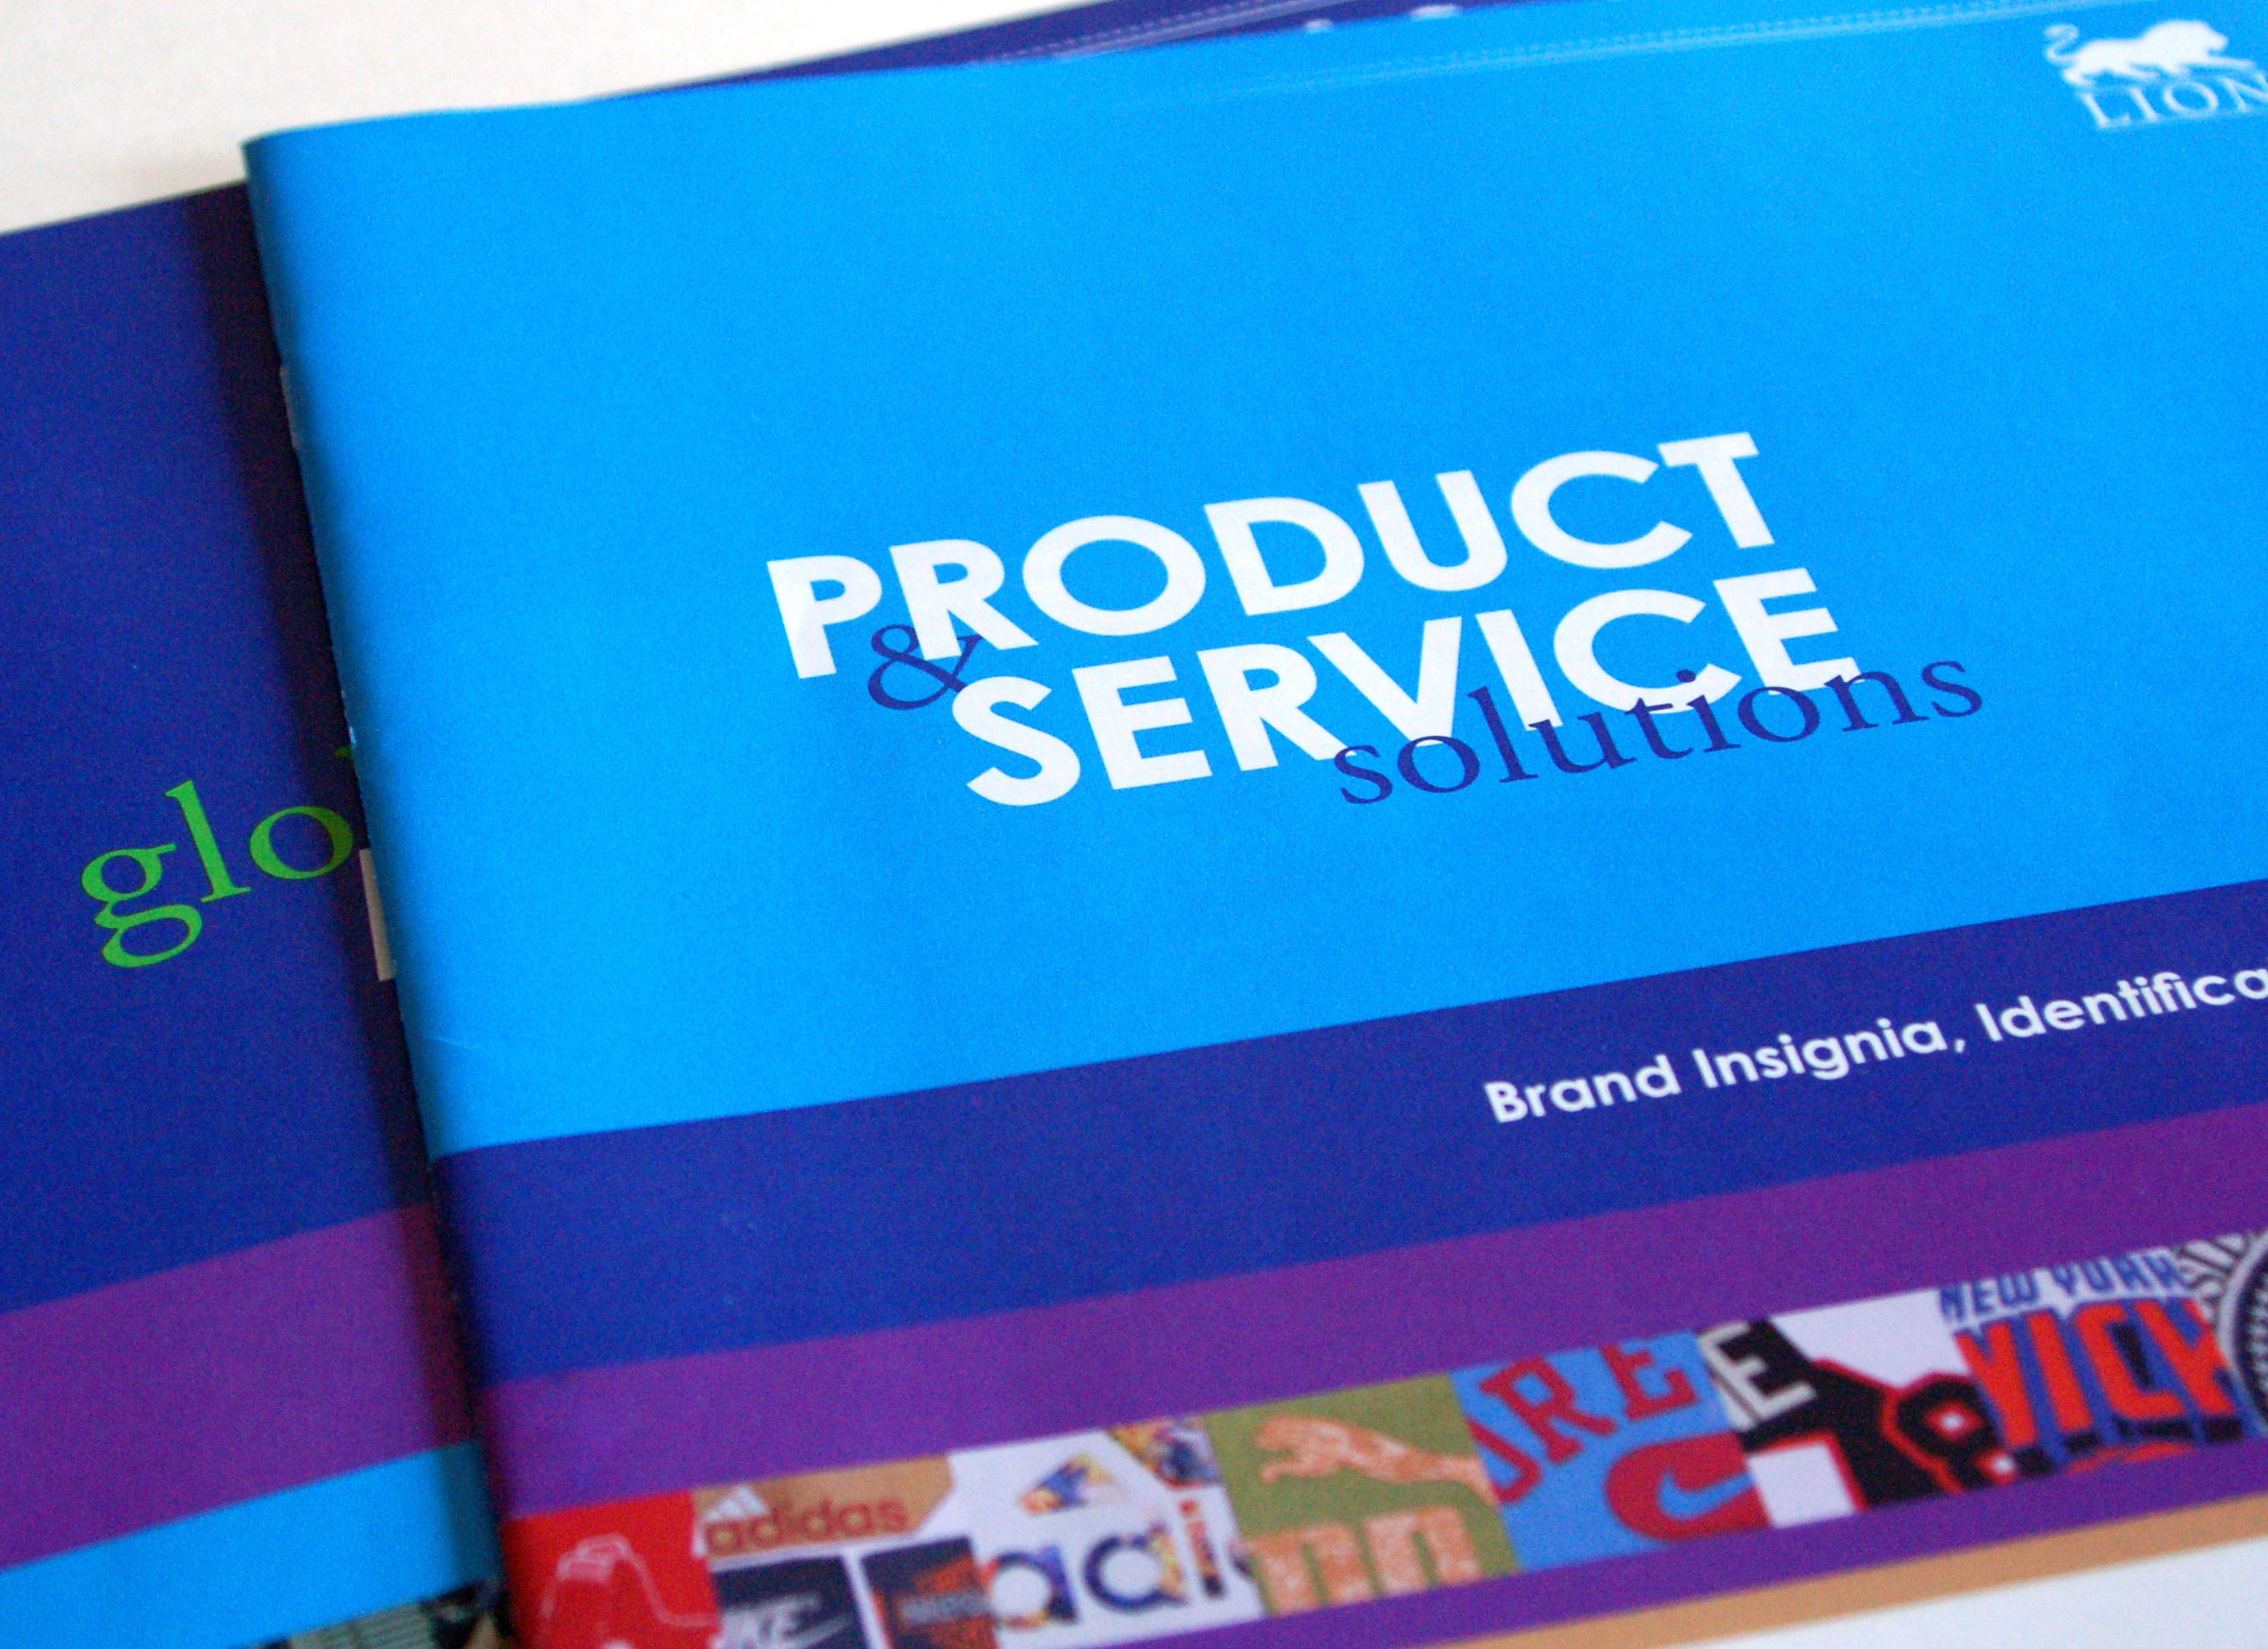 Lion Brothers Products & Services booklet cover photo